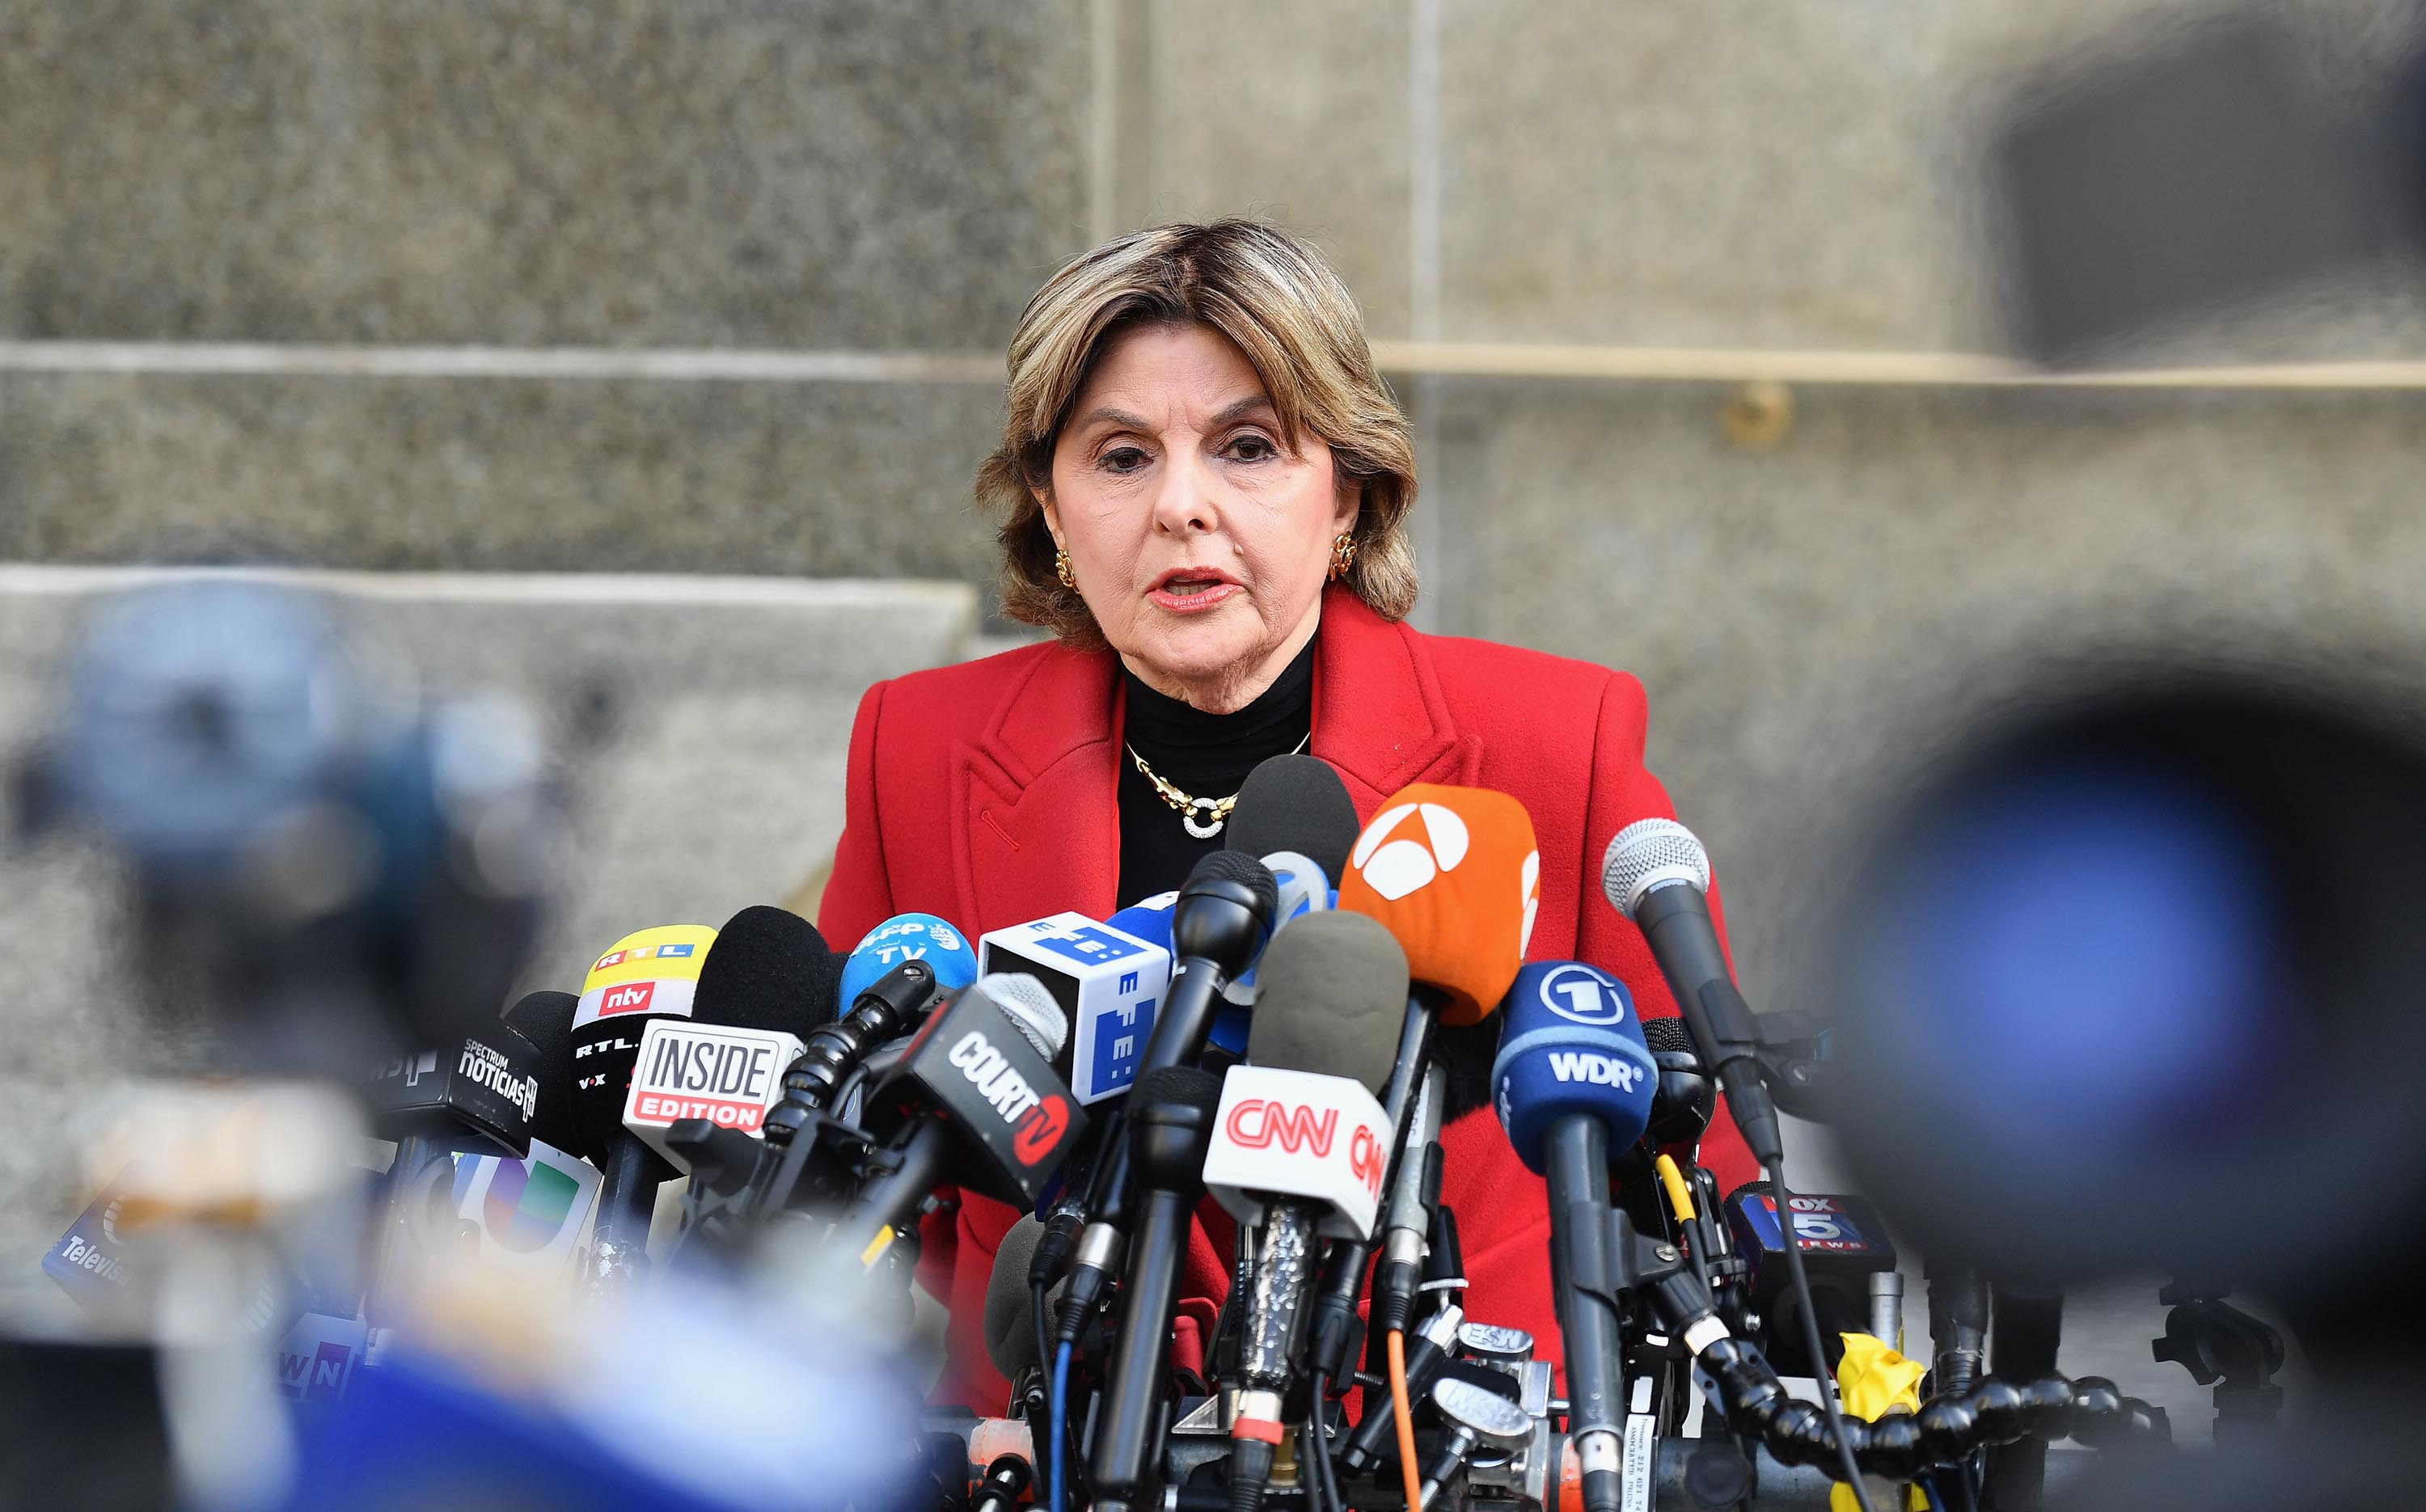 Gloria Allred, who represents Weinstein accuser Miriam Haley, speaks at the Manhattan Criminal Court on February 24, 2020 in New York City.